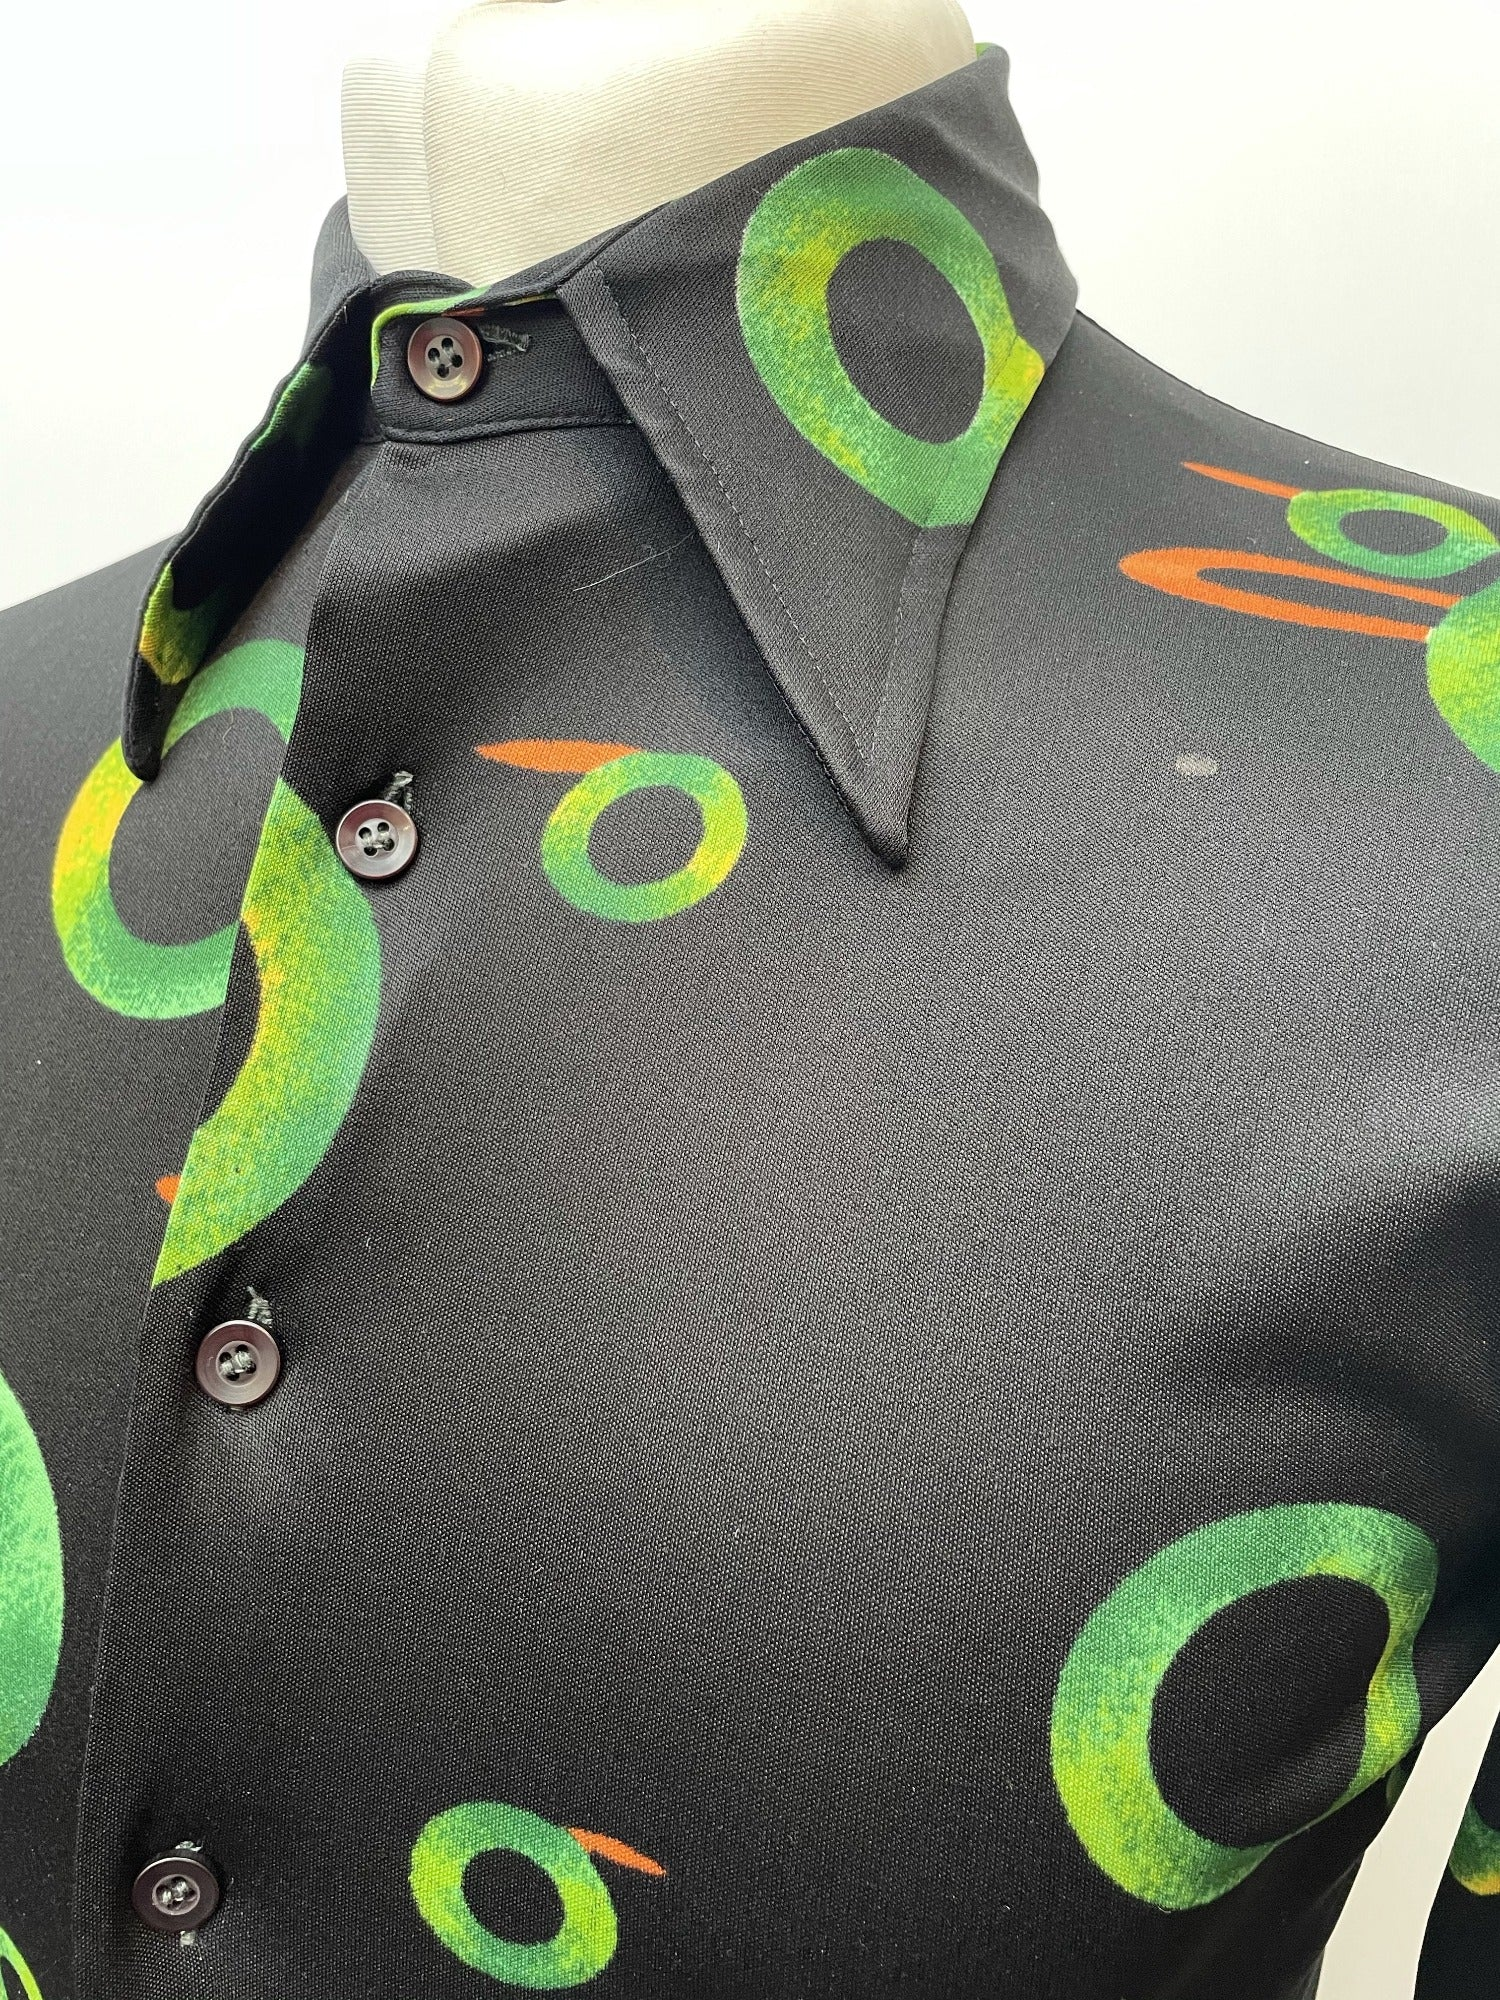 vintage  Urban Village Vintage  S  retro  polyester  patterned  nylon  mens  Green  disco  dagger collar  button down  black  big collar  70s  70  1970s